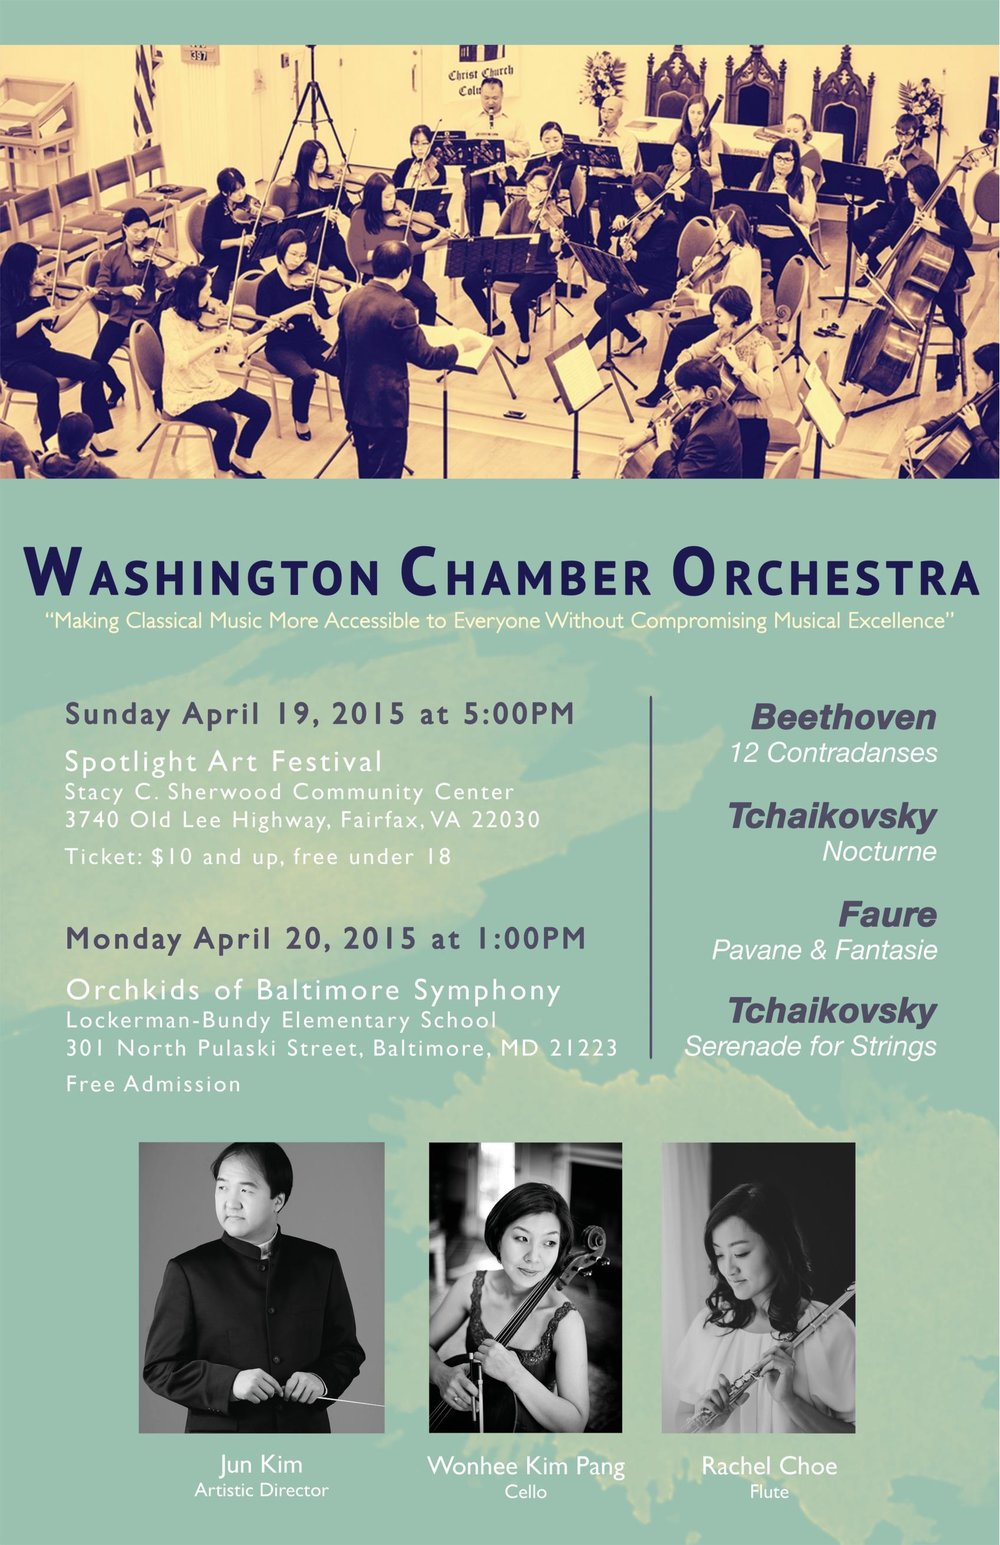 - Choe played as the soloist on Faure Fantasie with the WCO at the Fairfax Spotlight on the Arts Festival on Sunday April 19, 2015. The concert was held in the Stacey C. Sherwood Community Center of Fairfax VA, and at their first outreach concert in the Orchkids program of the Baltimore Symphony. The concert was held in the Lockerman Bundy Elementary School of West Baltimore on Monday April 20, 2015.